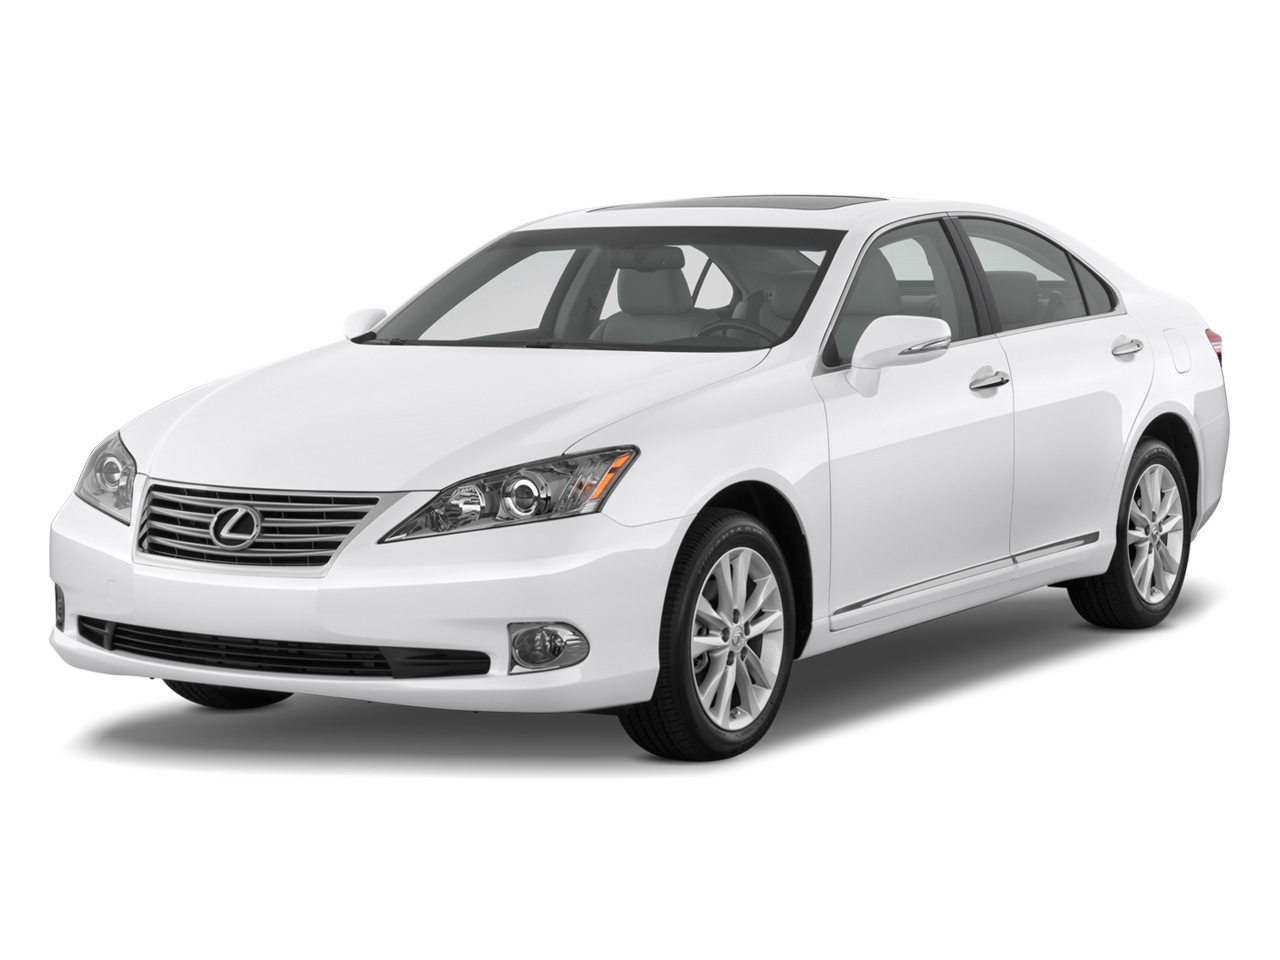 2011 Lexus ES 350 Review Ratings Specs Prices And